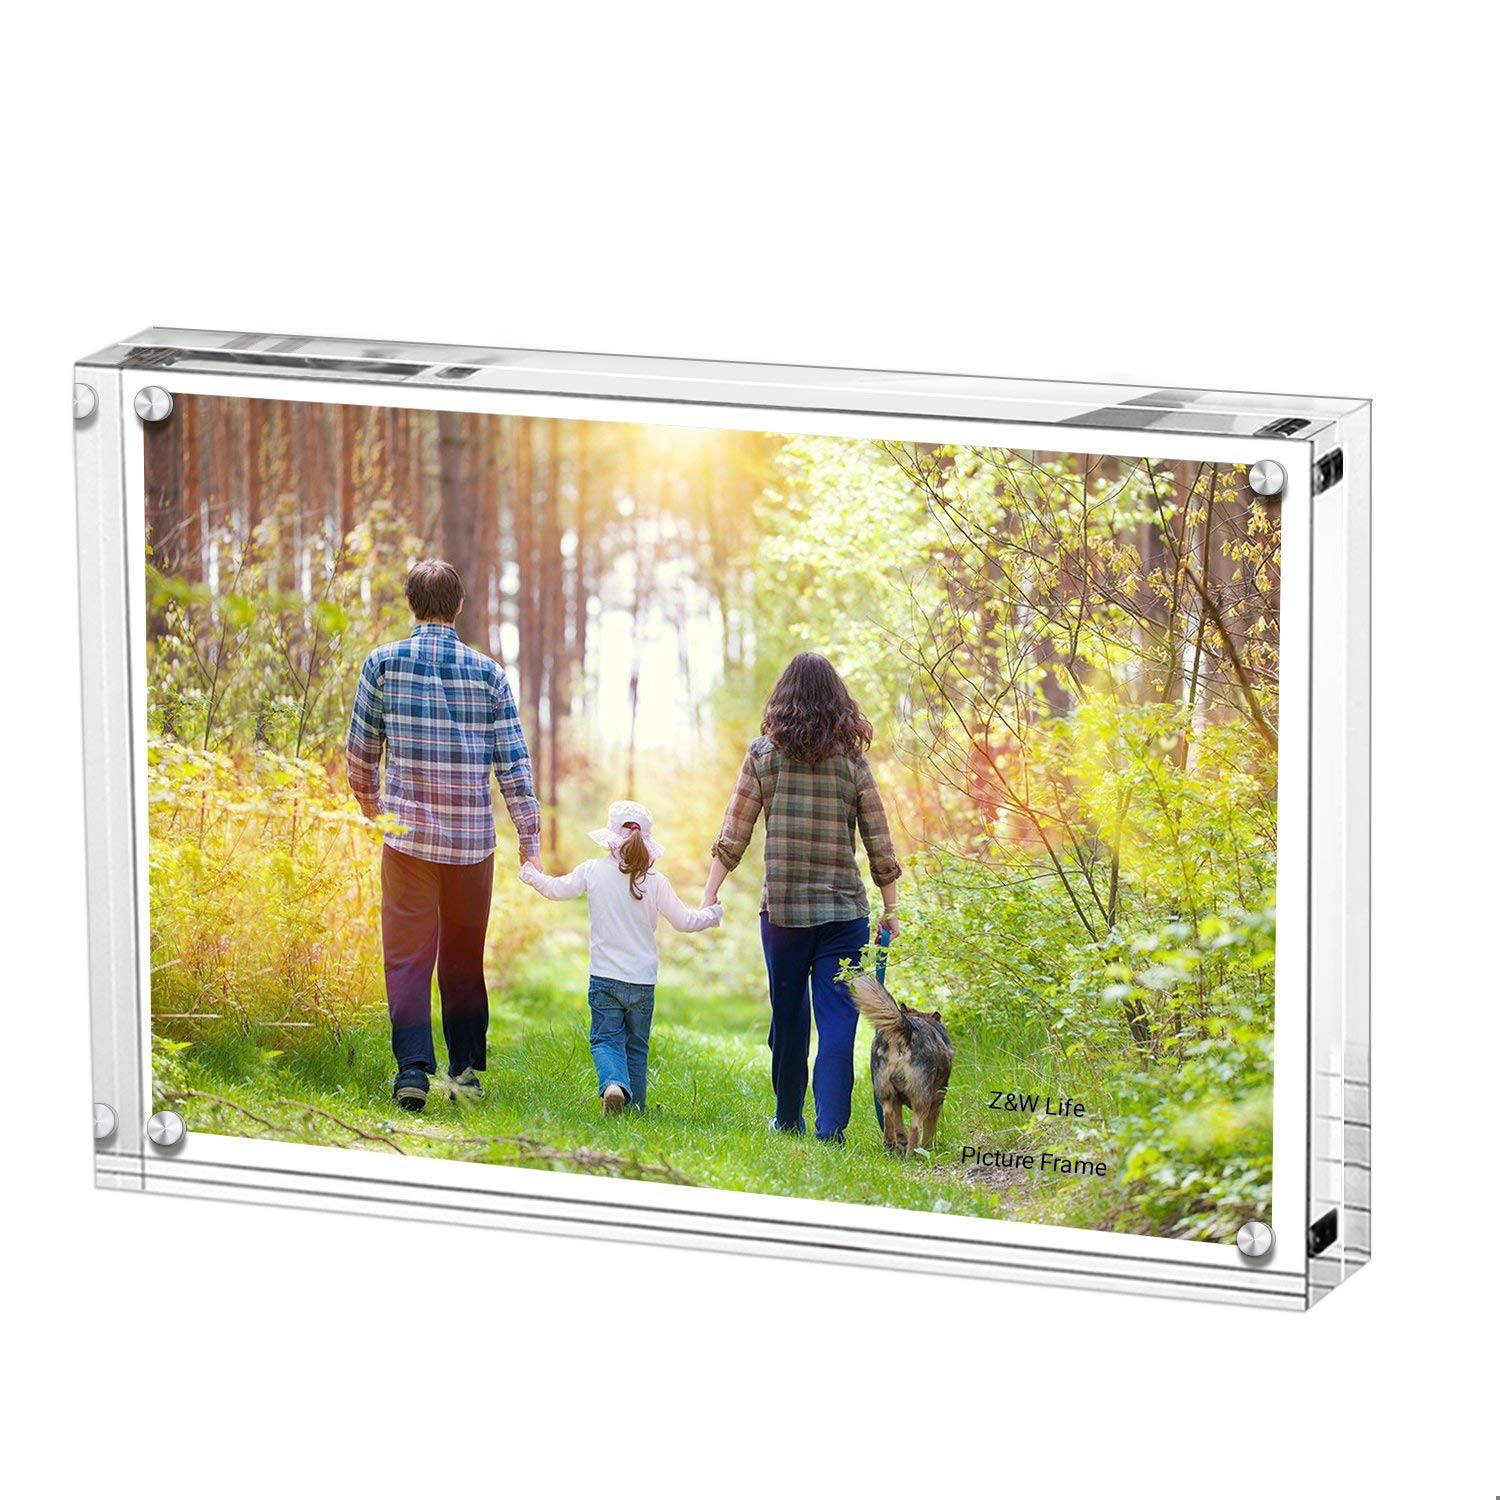 Z&W Life Acrylic Picture Frames, Stand with Magnets, Hold 8 x 10 Inches Pictures, Double Sided Block Set, Desktop Frameless, 10mm +10mm Thickness Transparent (8 x 10 inches)